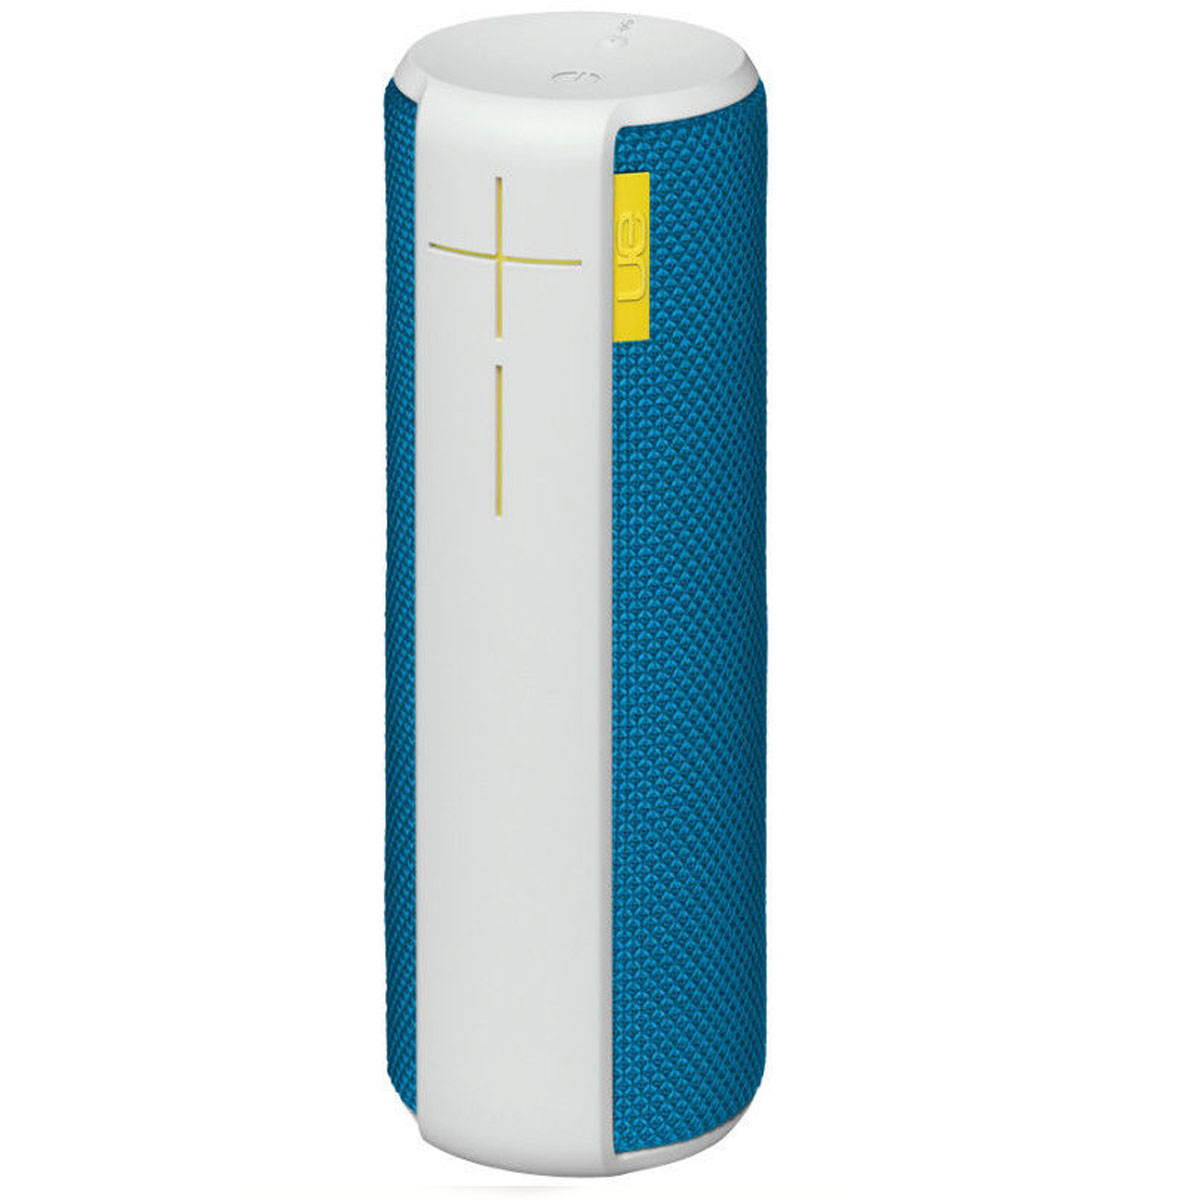 Ultimate ears boom cyan blanc dock enceinte for Housse ultimate ears boom 2